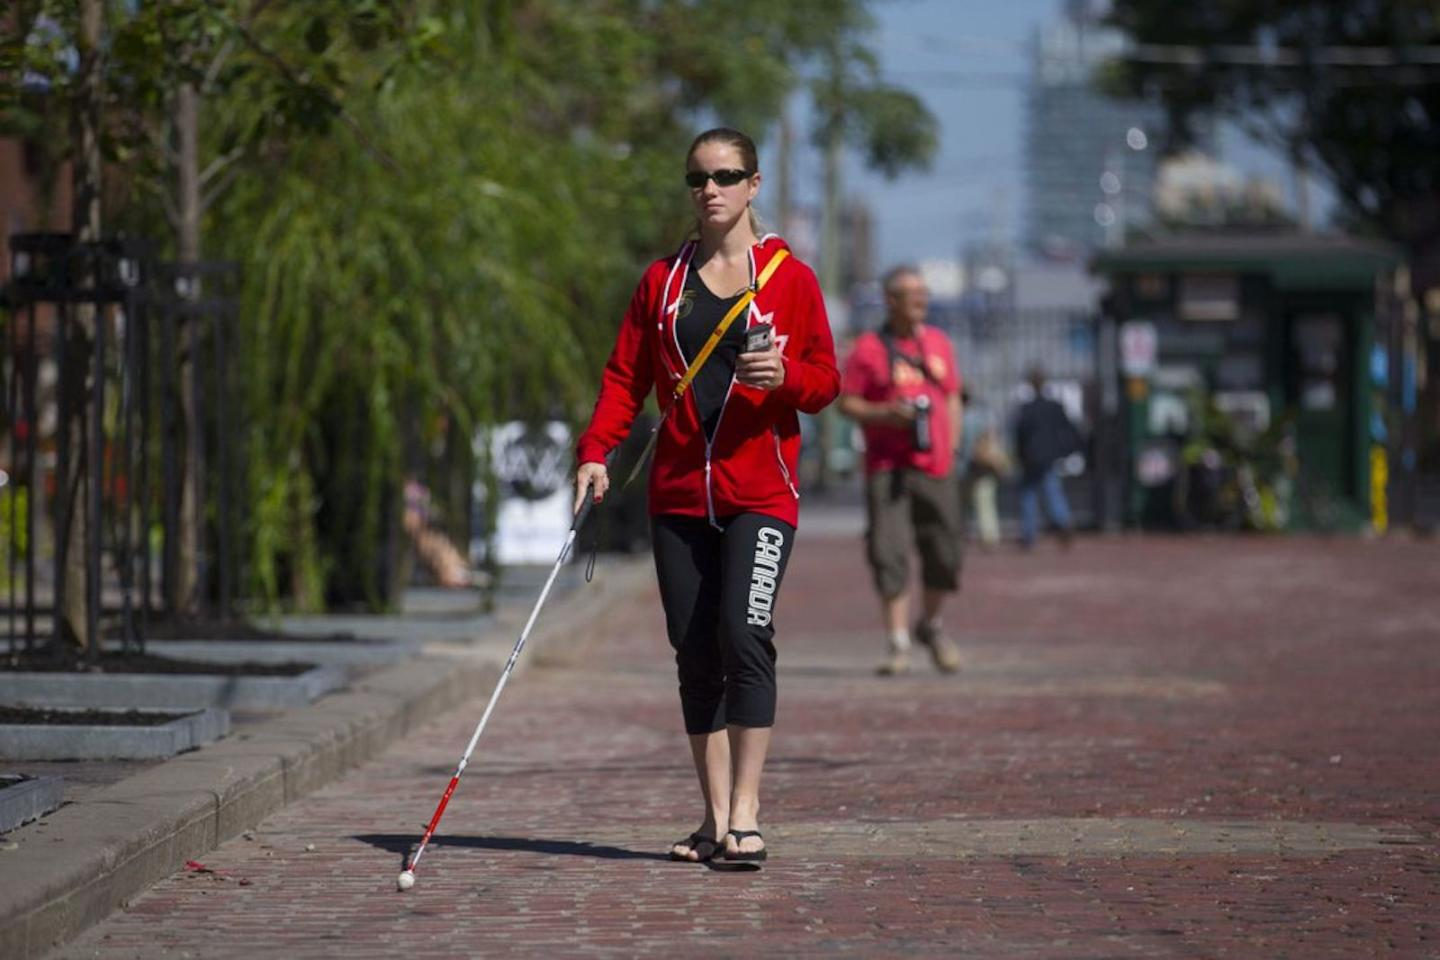 Image of person walking with a sight stick in one hand and a phone in the other.